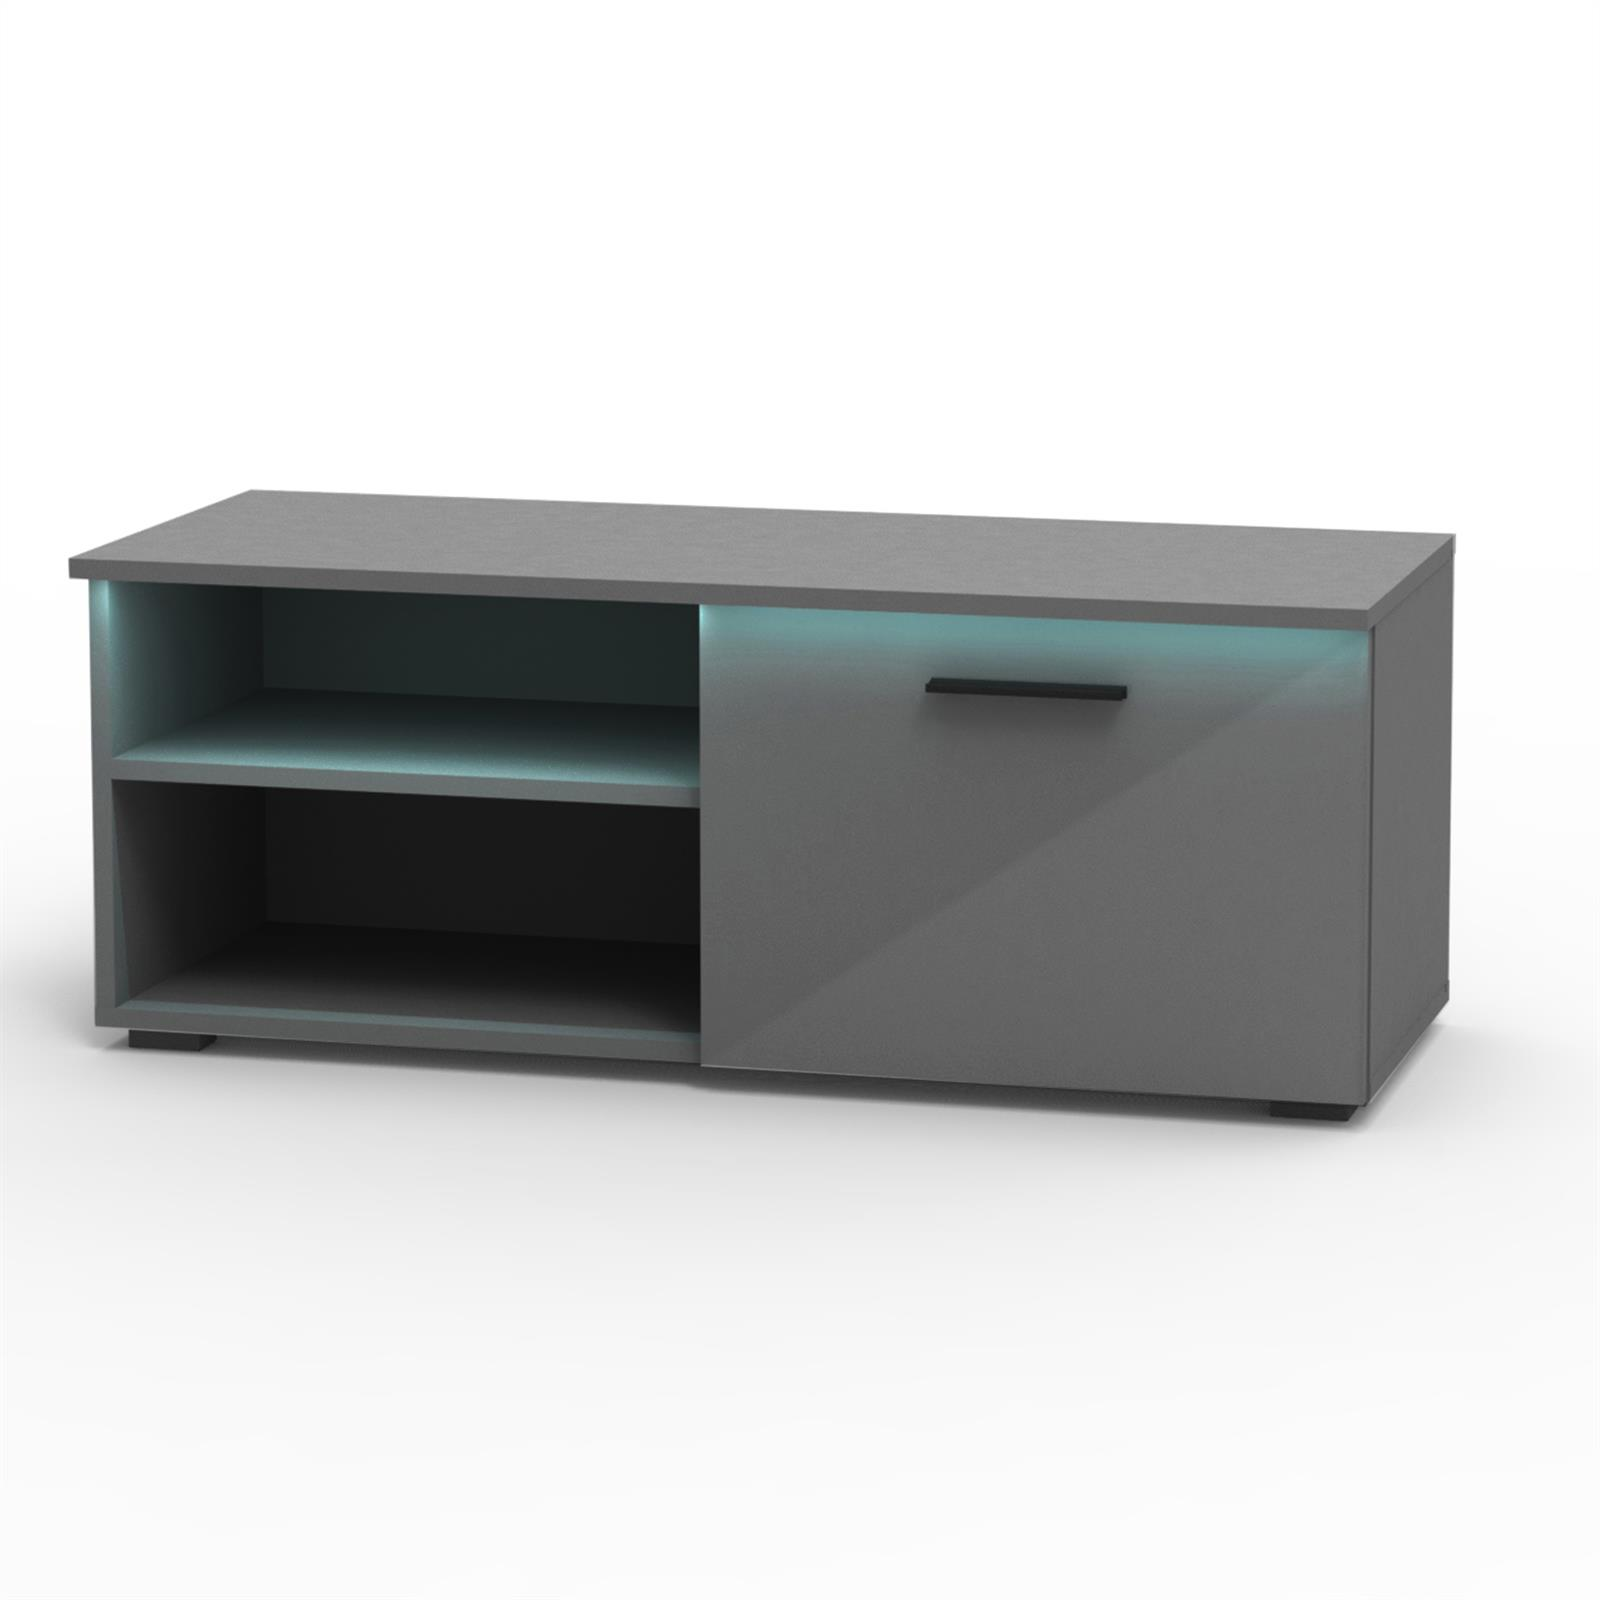 tv lowboard malibu in grau hochglanz mit led beleuchtung caro m bel. Black Bedroom Furniture Sets. Home Design Ideas